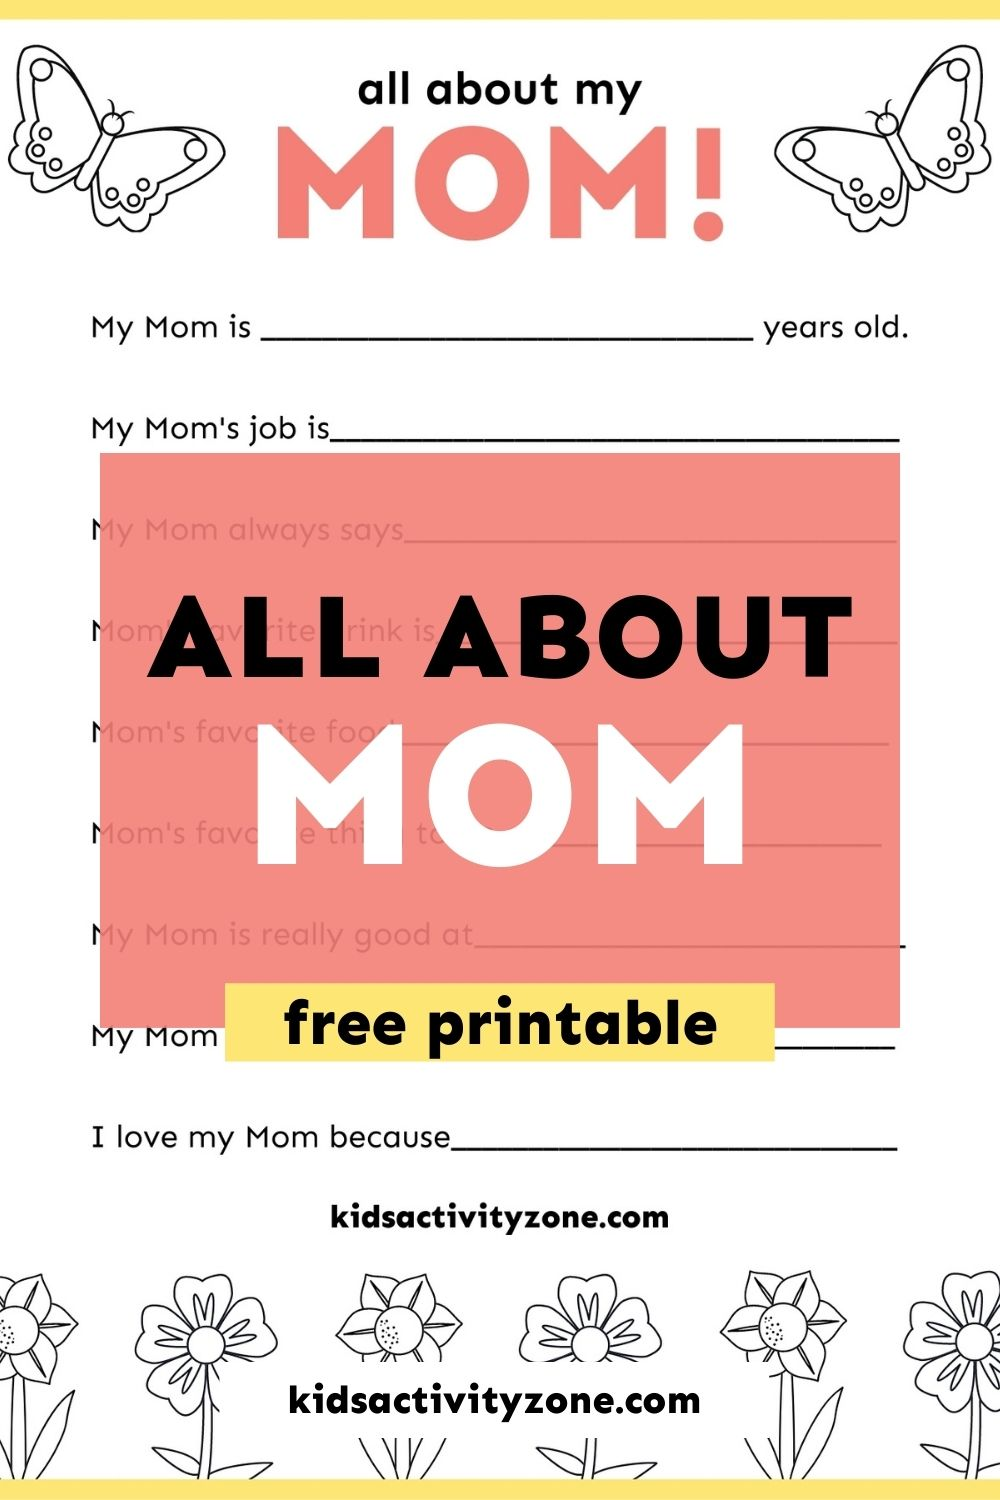 Grab this quick and easy All About Mom Printable that's free! It's the perfect thing to gift to Mom on Mother's Day from the kids. It's something she will treasure and keep forever. There's nothing more precious than looking back on the sweet answers kids give to the questions they are asked about Mom!